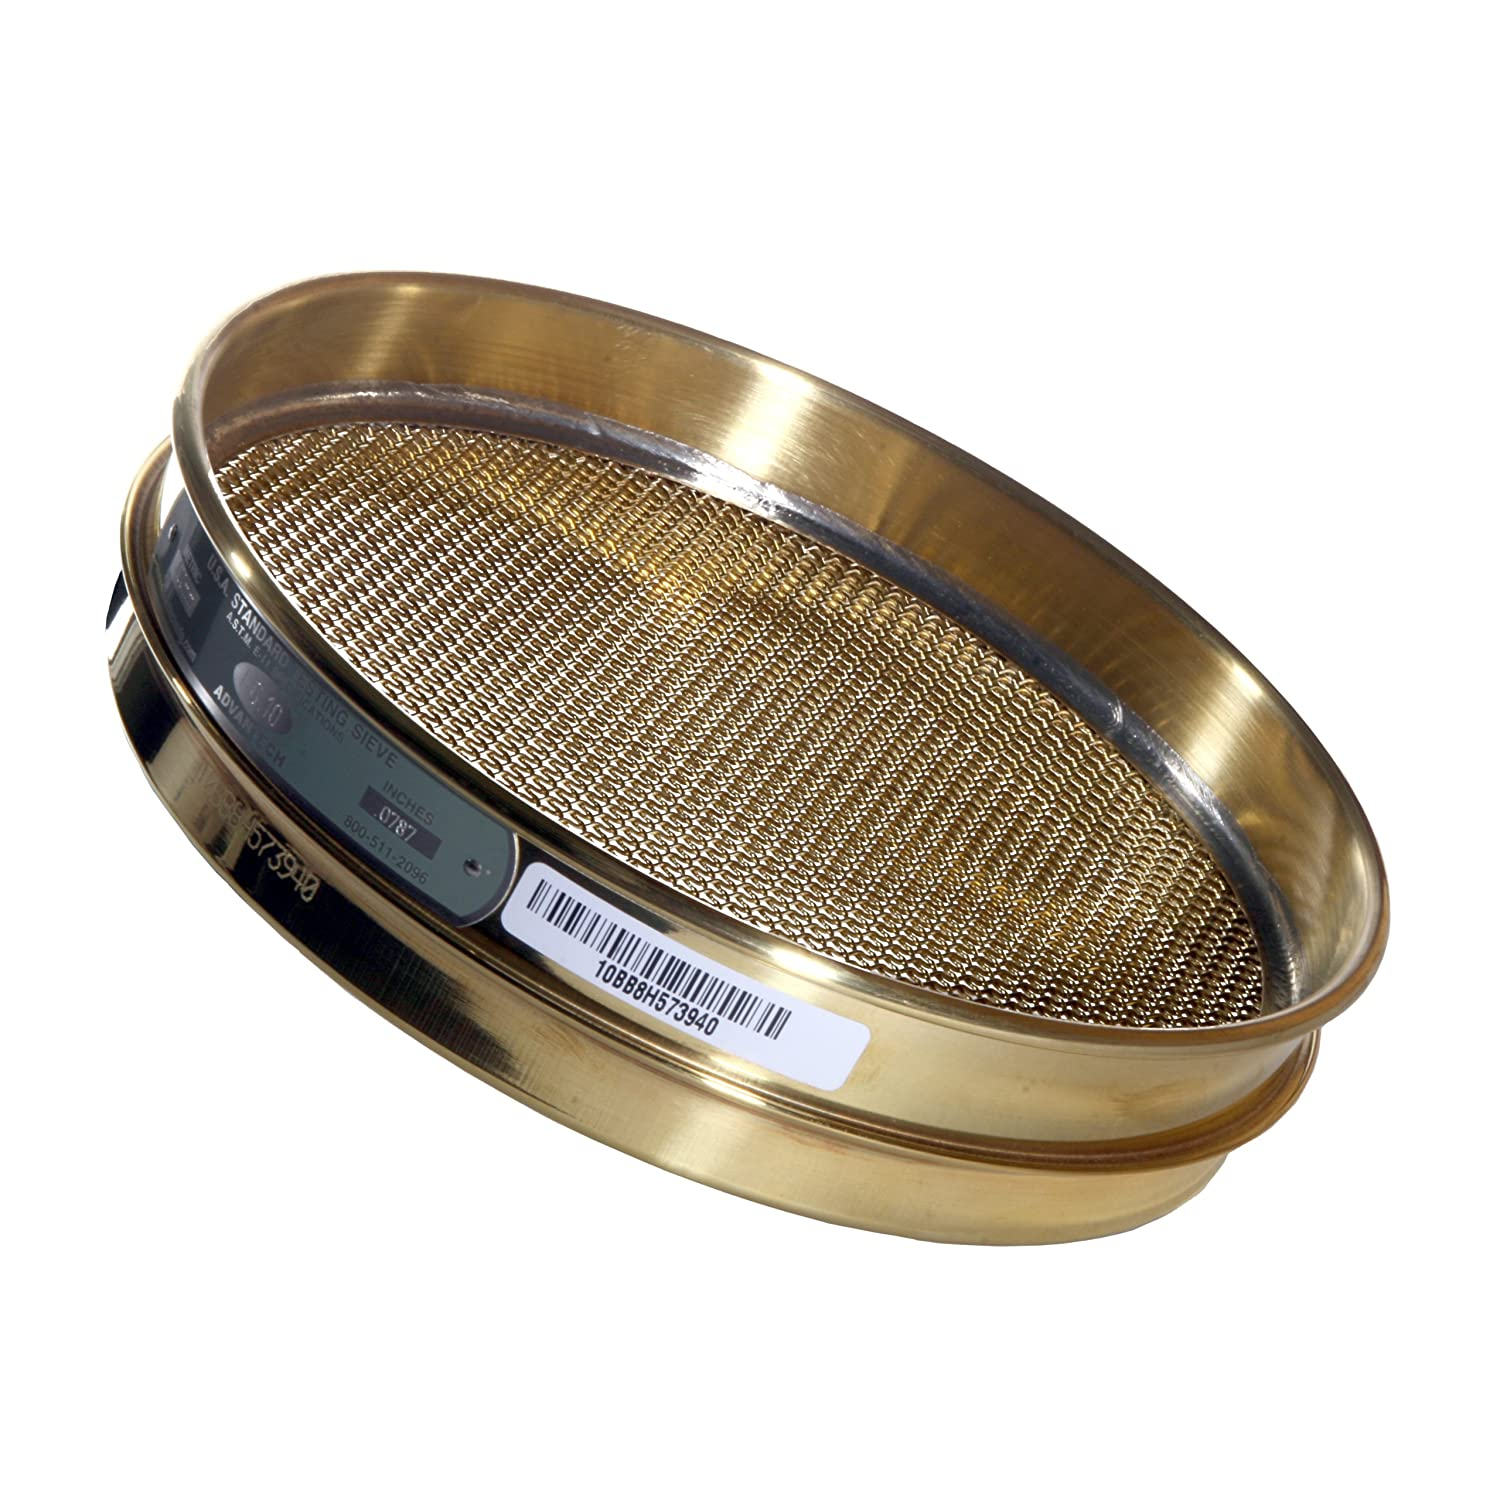 Advantech Brass Test Sieves, 8' Diameter, #30 Mesh, Full Height 8 Diameter ADV-30BS8F